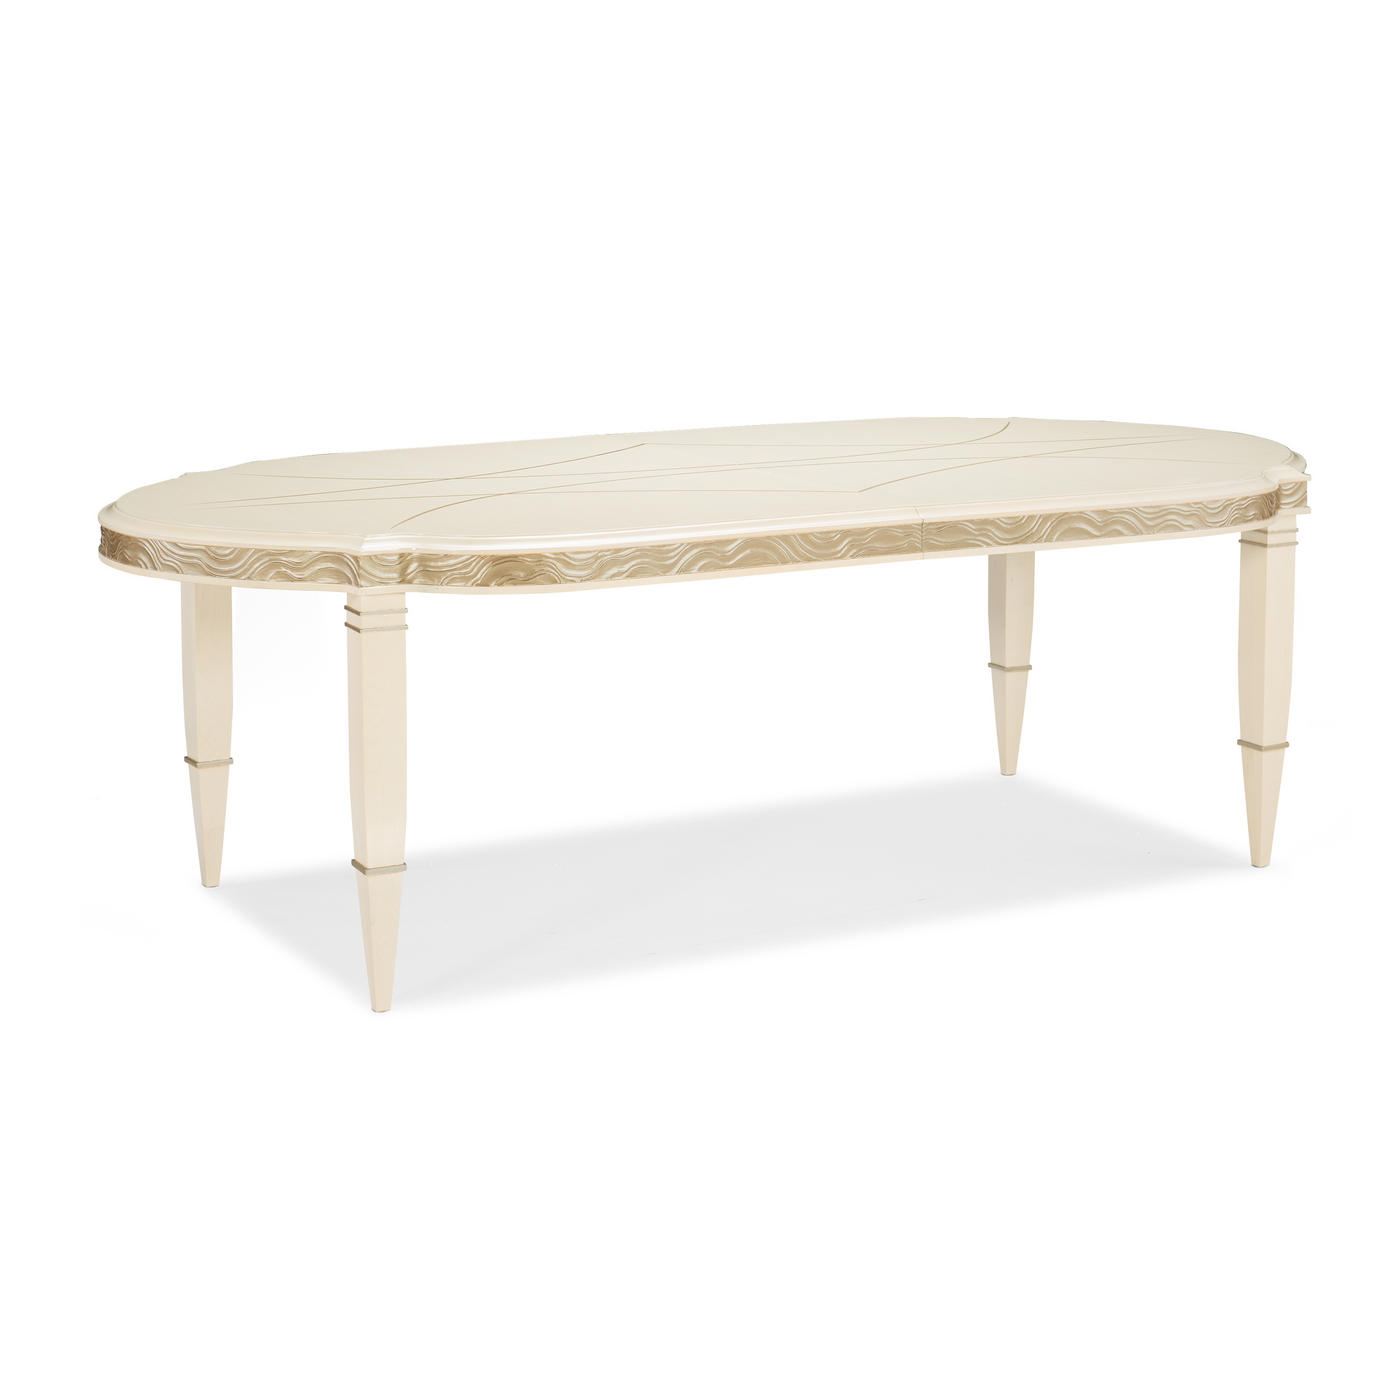 Adela Dining Table